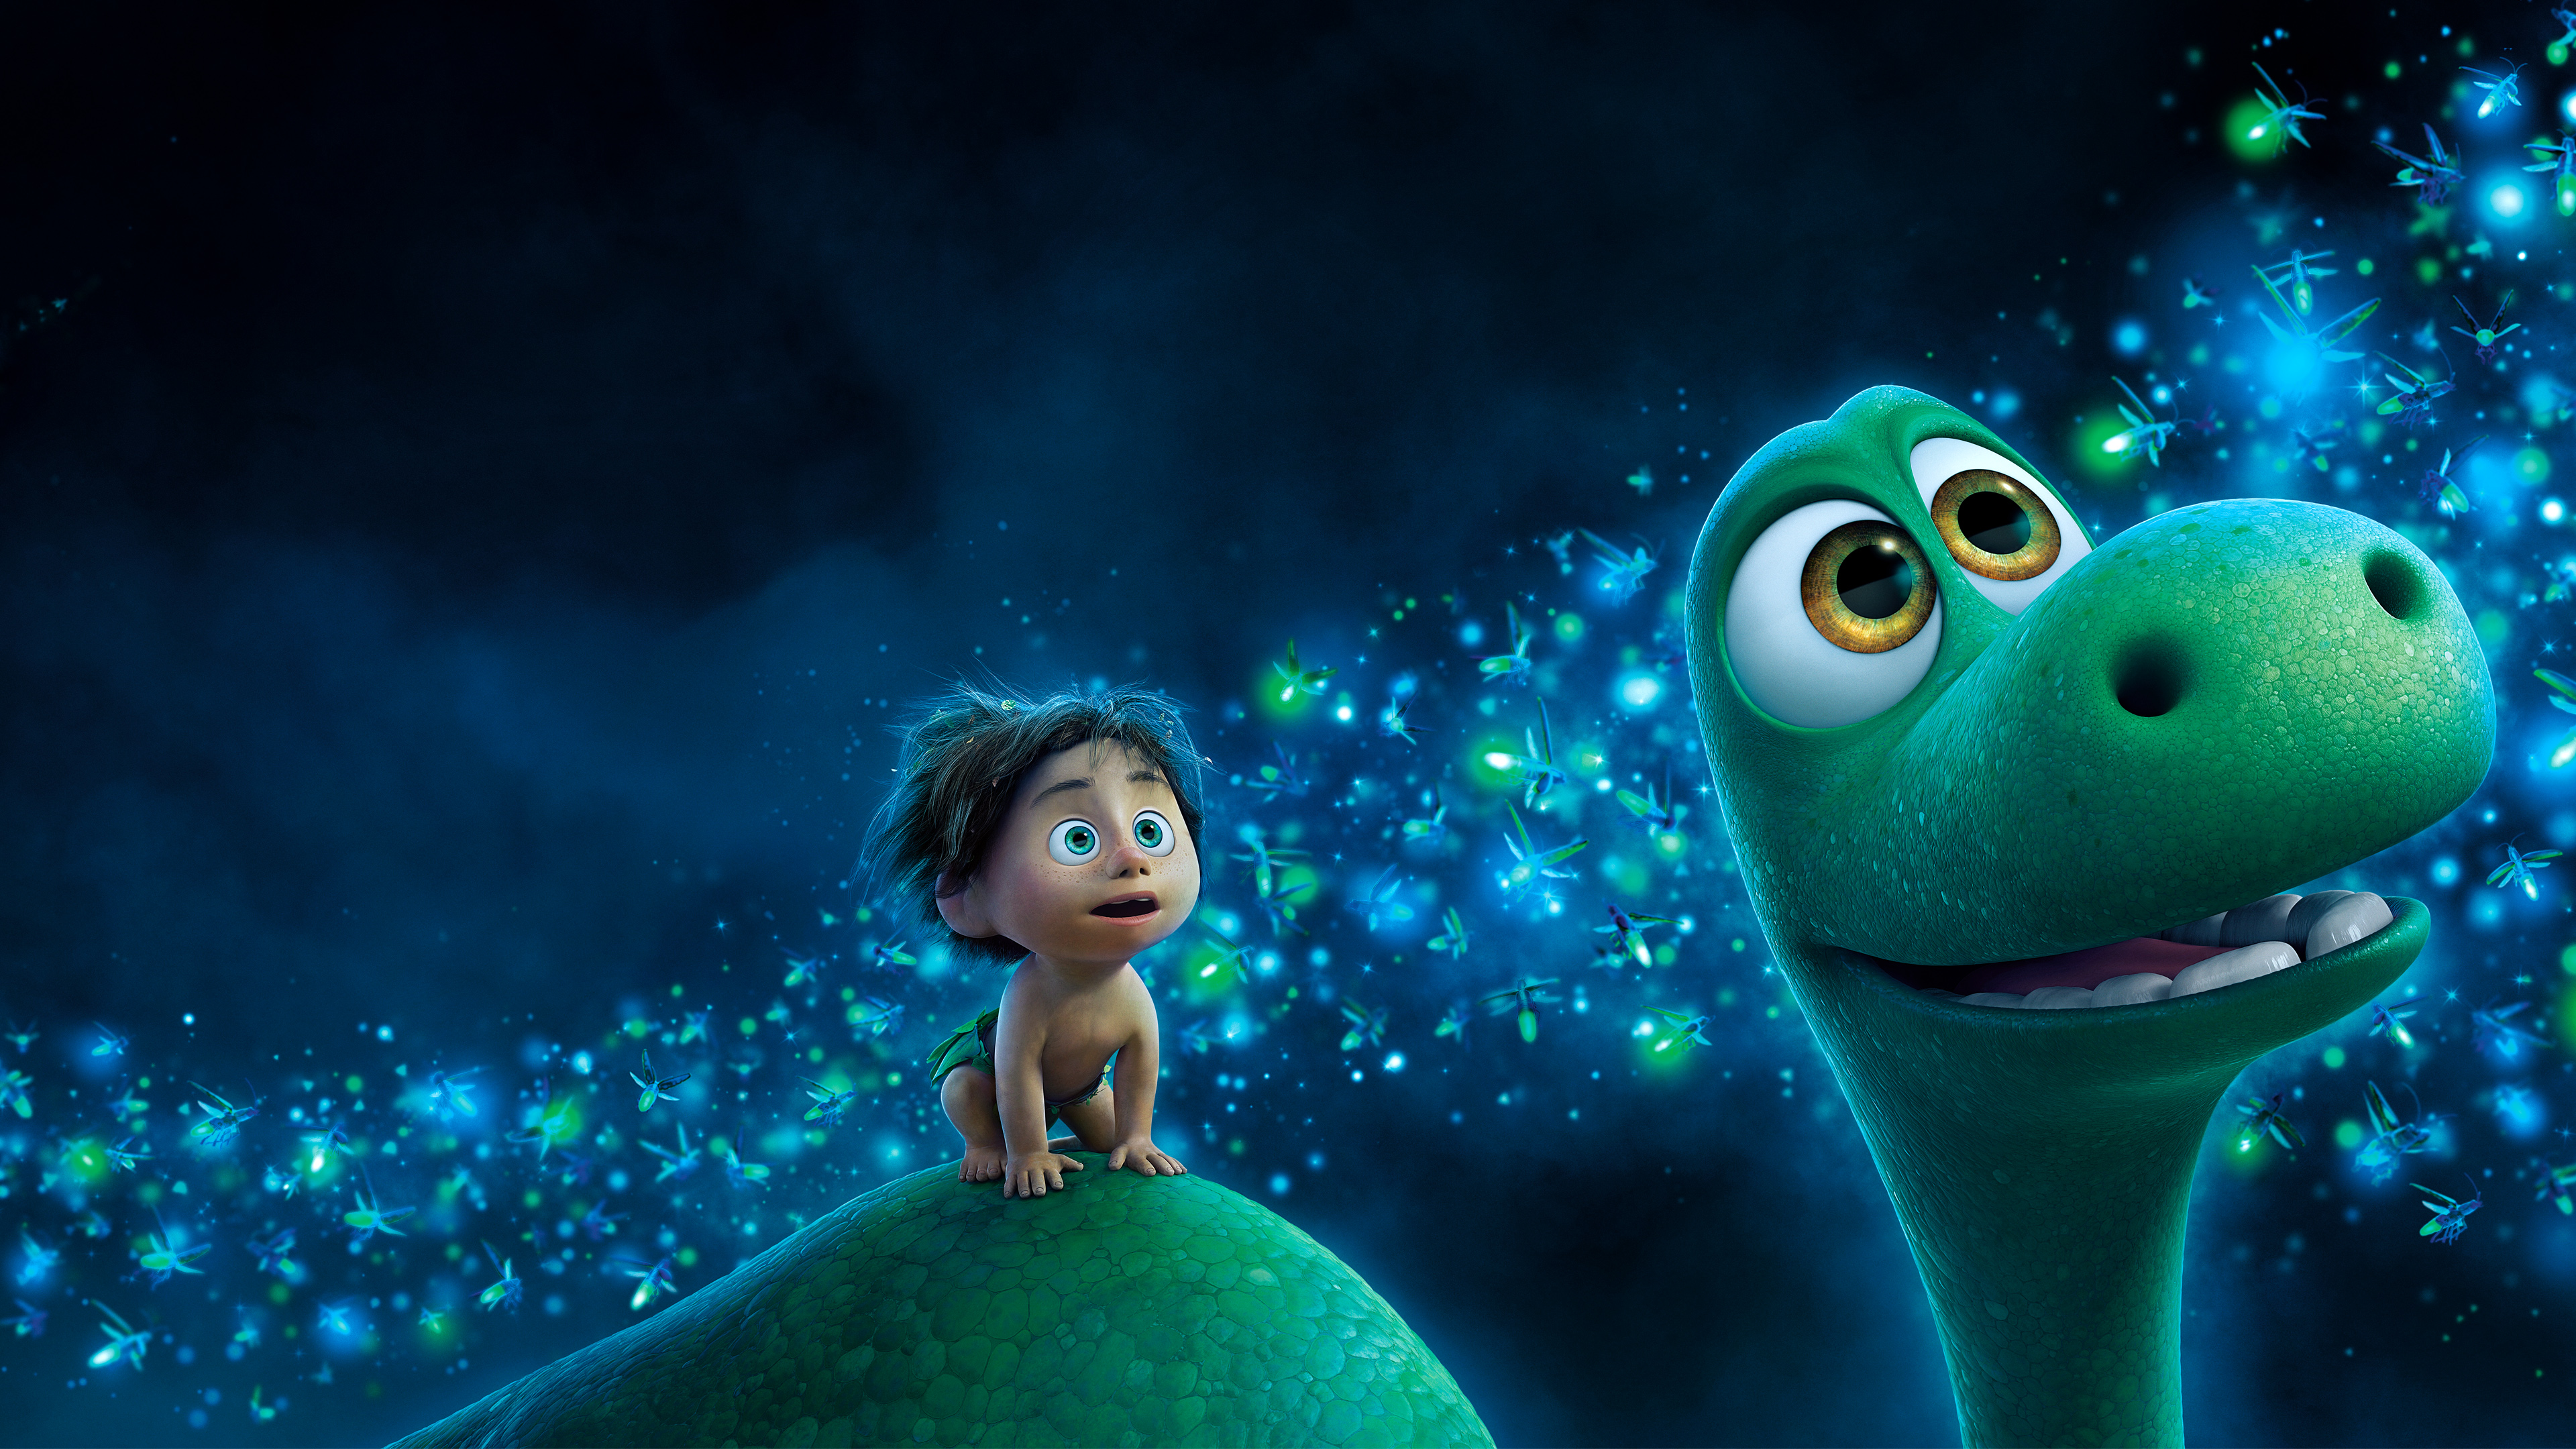 The Good Dinosaur Movie Wallpapers THIS Wallpaper